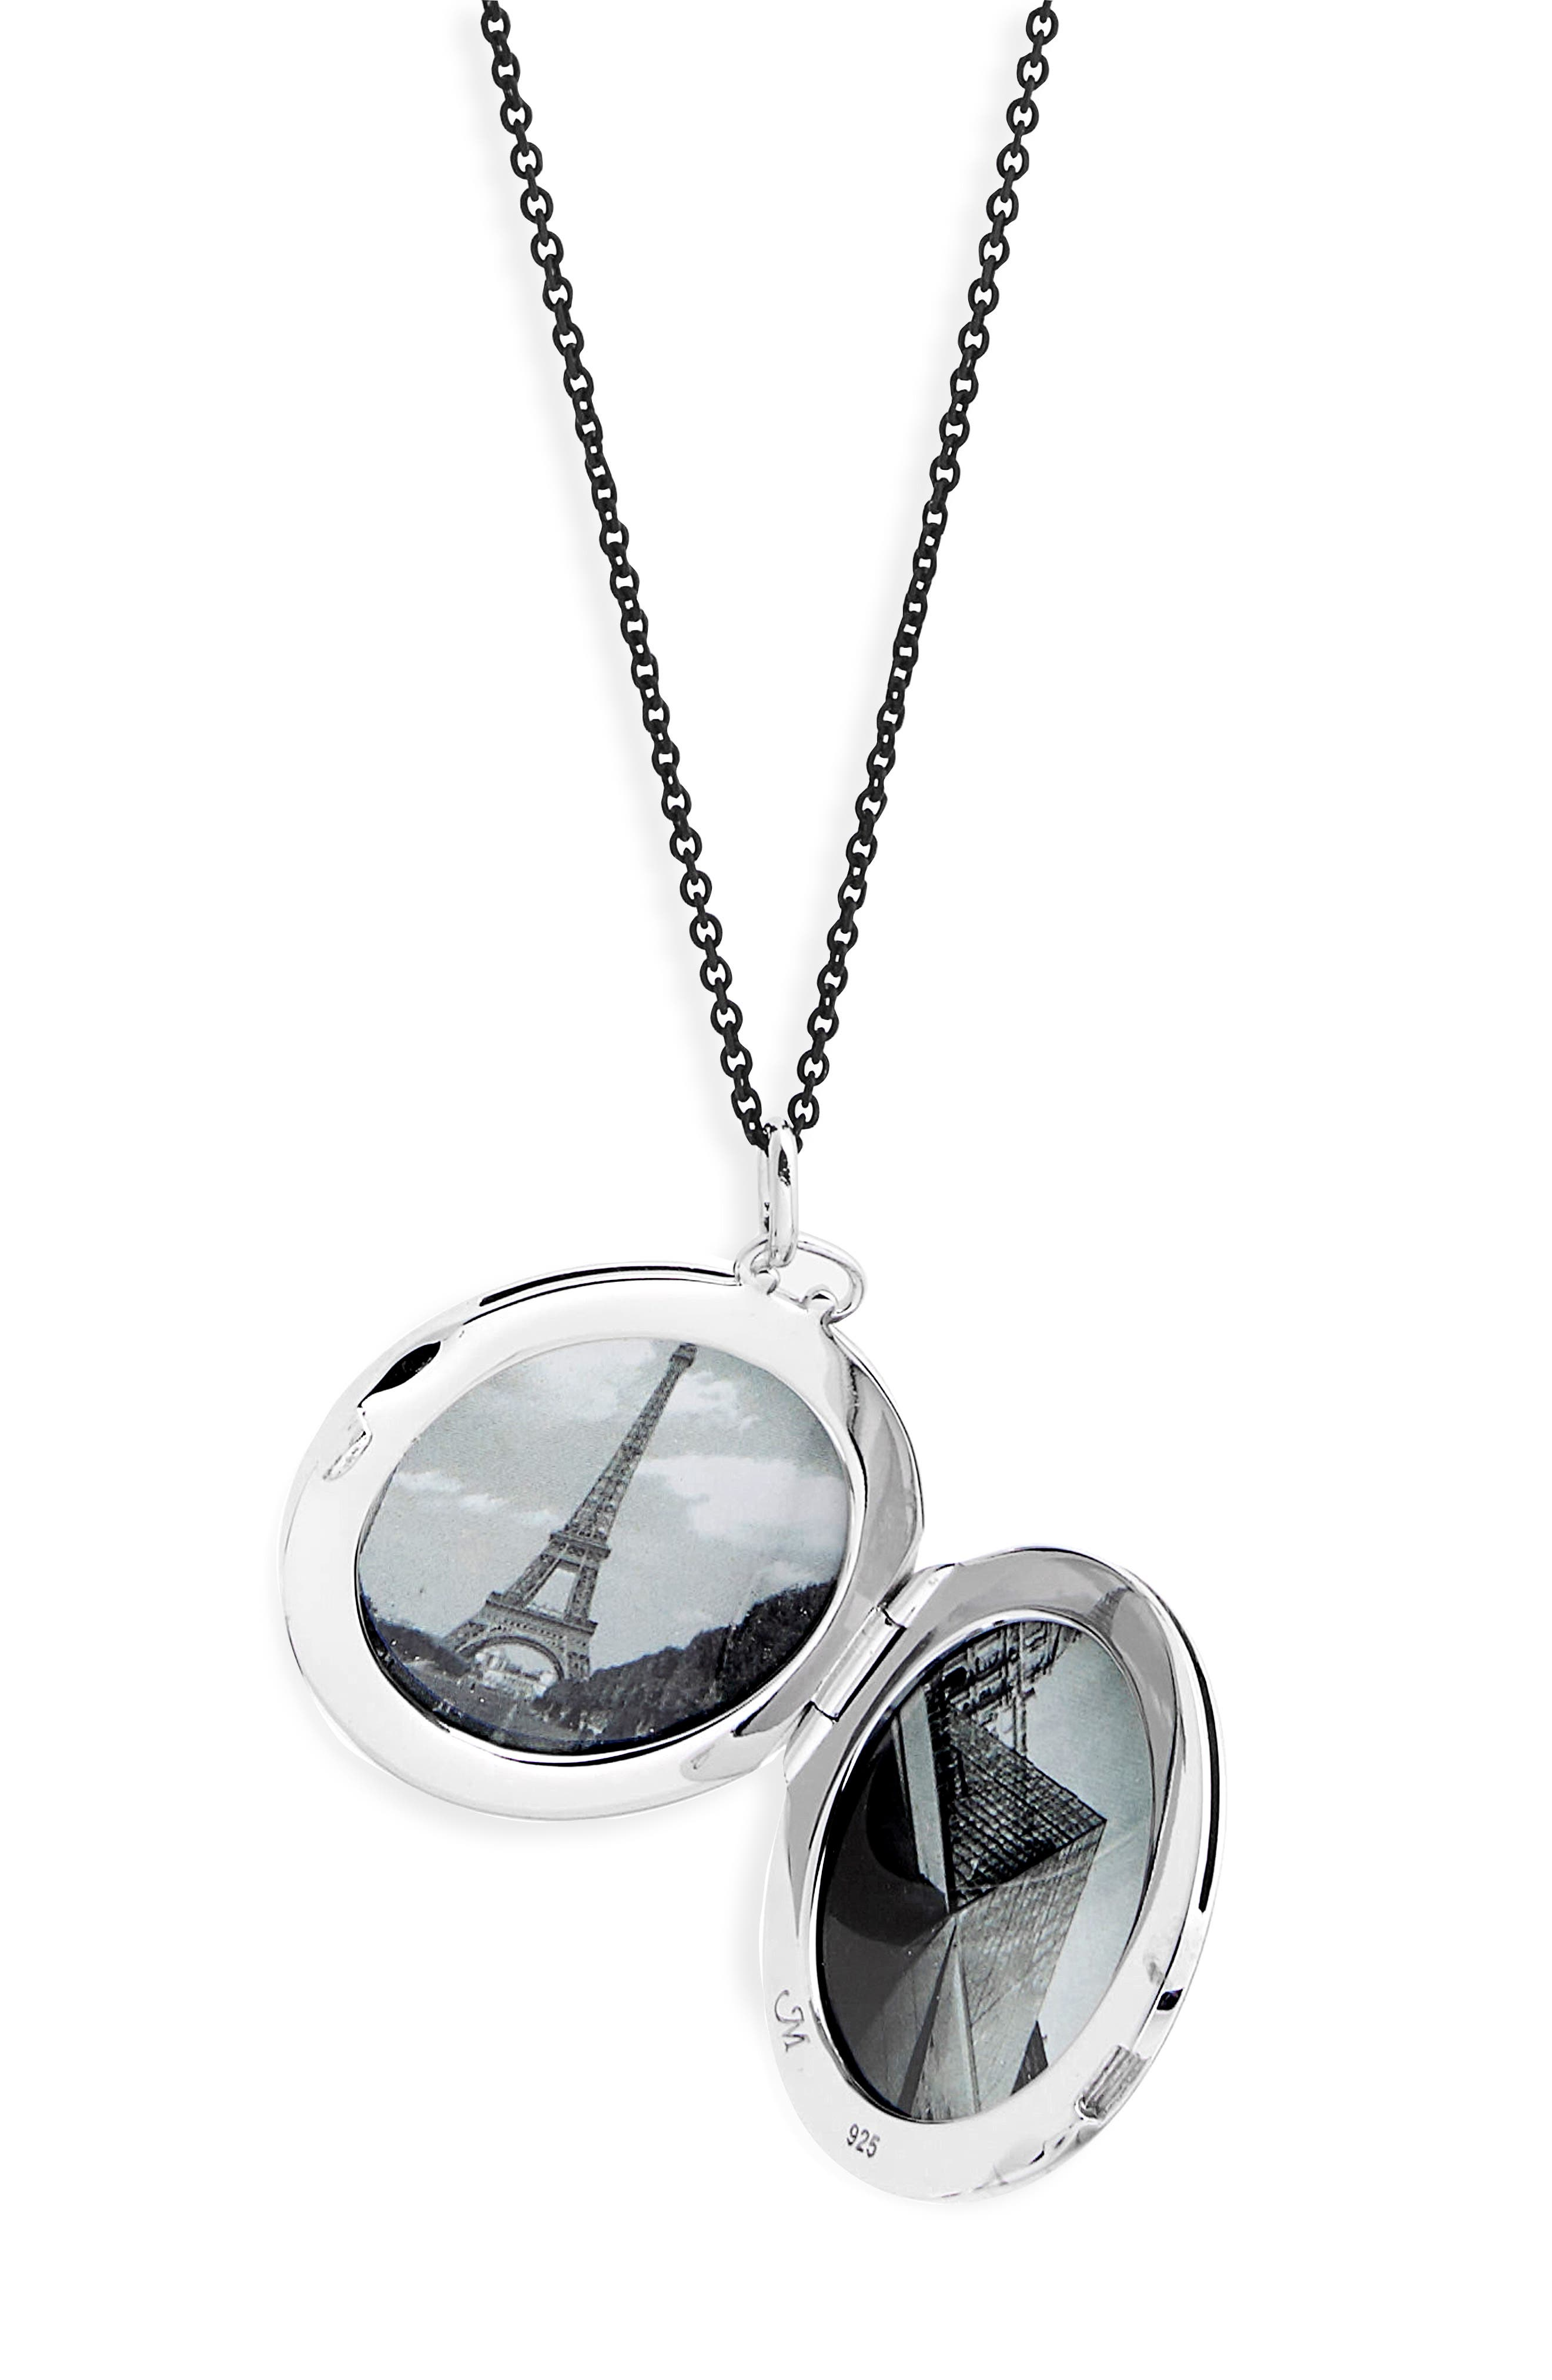 Round Dome Locket Necklace,                             Alternate thumbnail 3, color,                             040